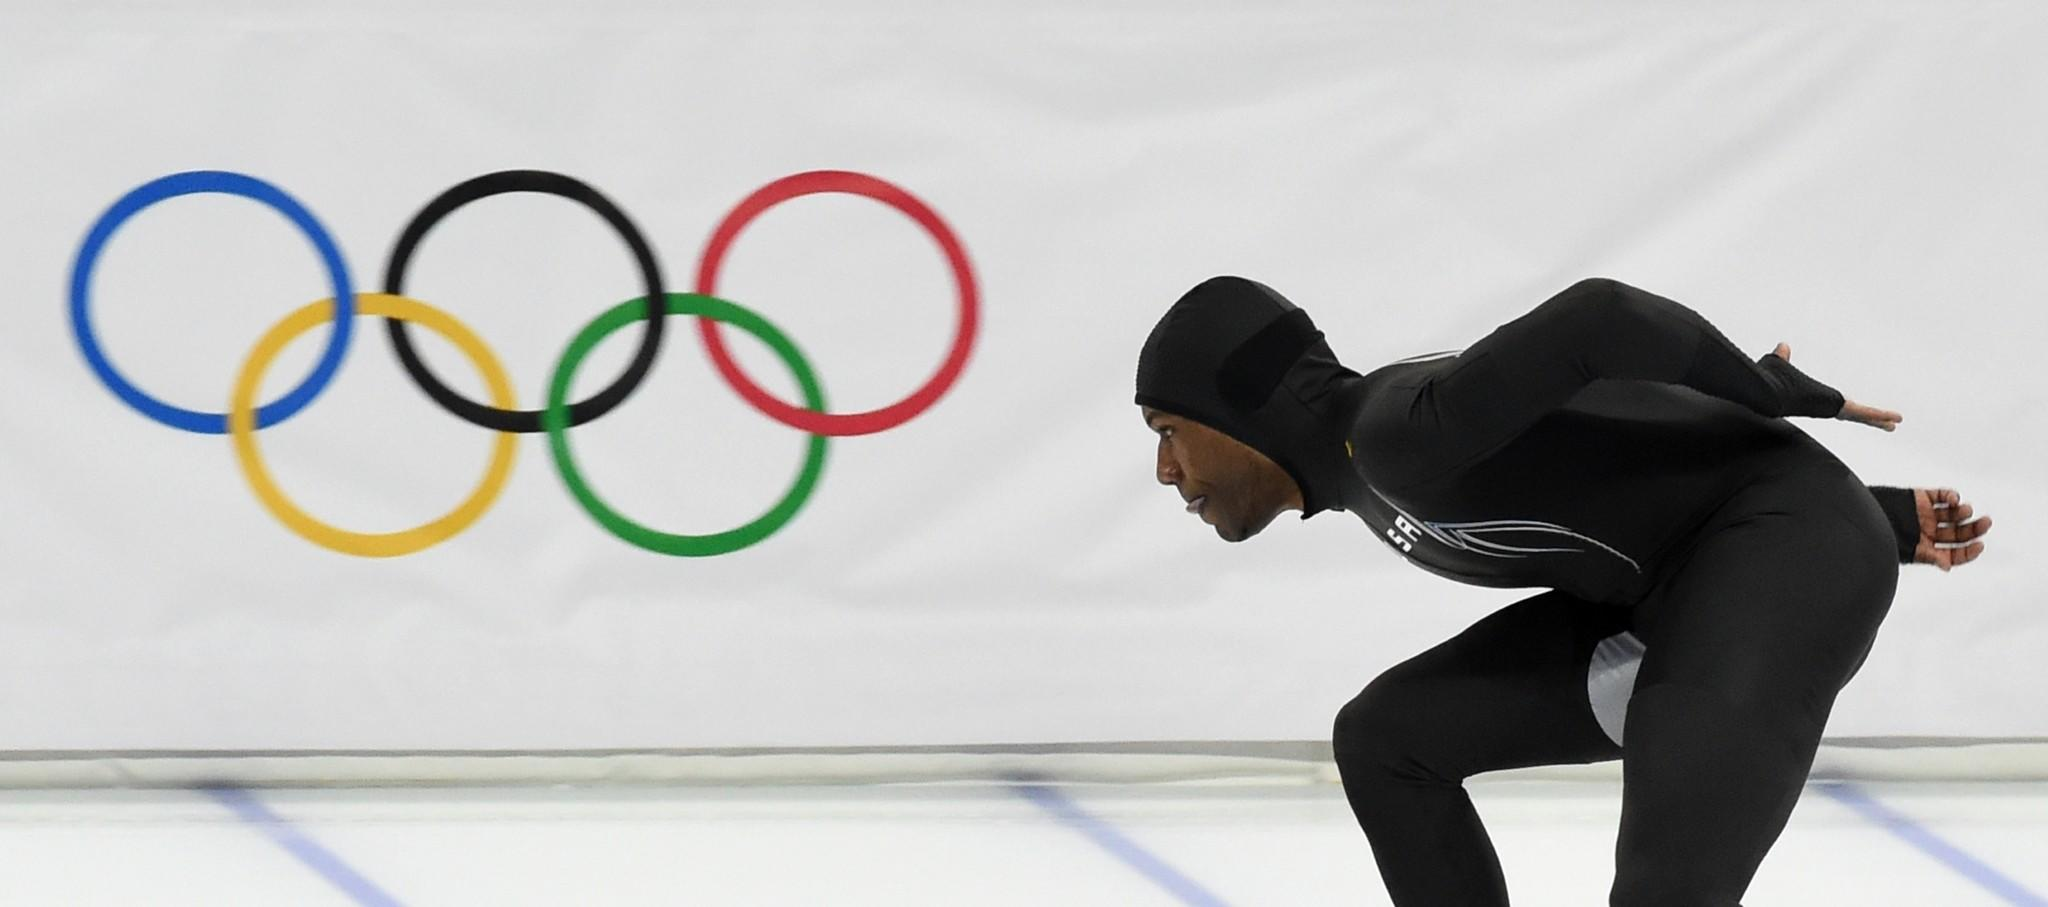 Shani Davis competes in the the Men's Speed Skating 1000 m at the Adler Arena during the Sochi Winter Olympics on February 12, 2014.